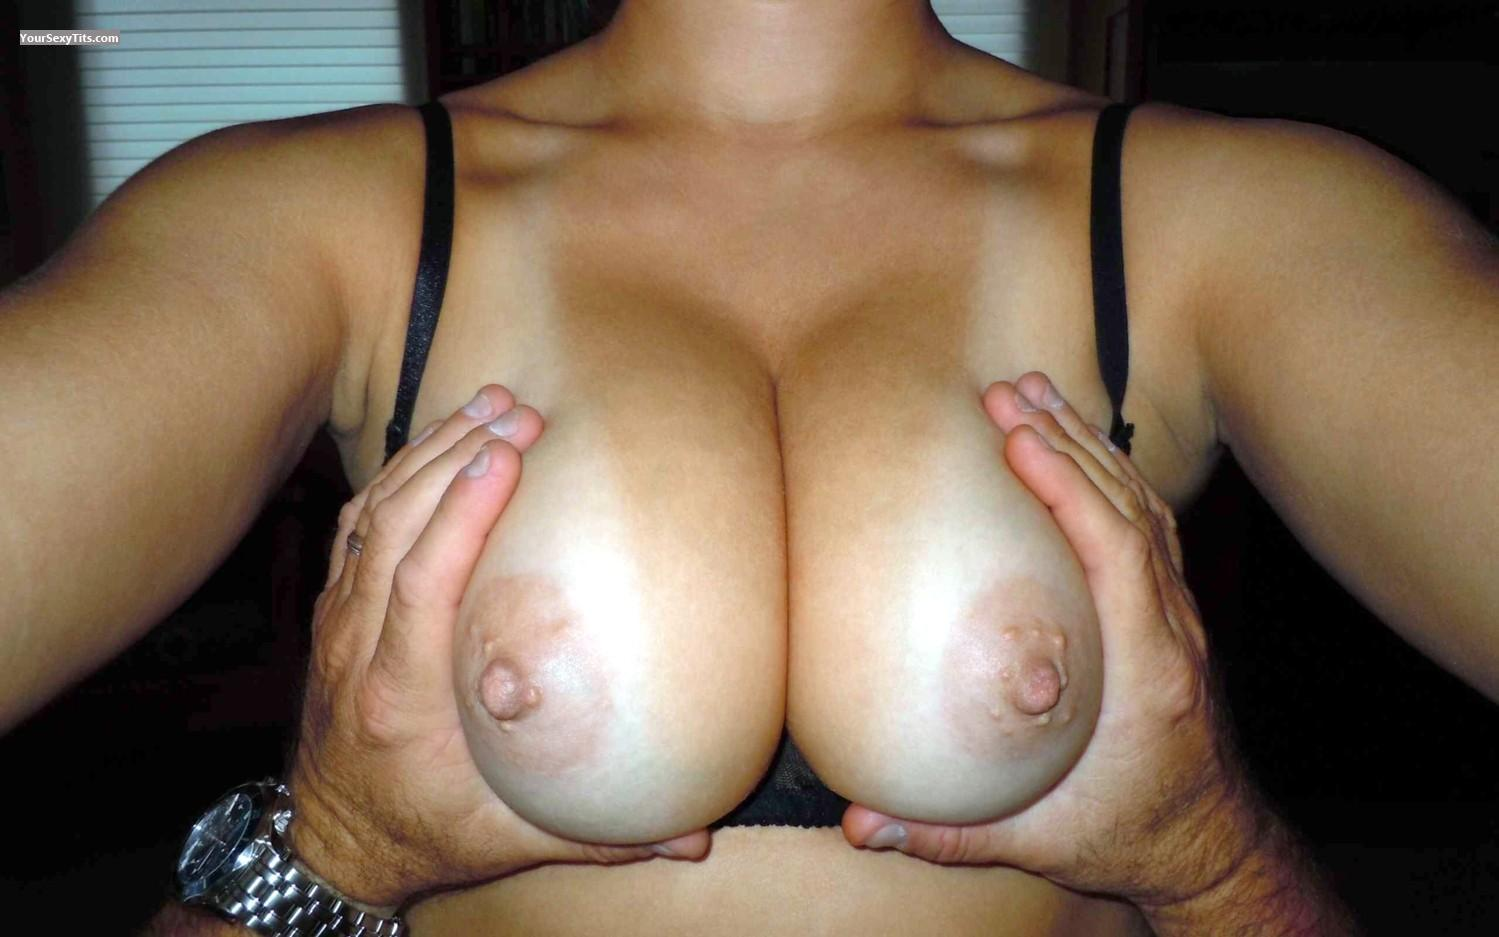 Tit Flash: My Medium Tits (Selfie) - Faans Flasher- A Hand Full from United States